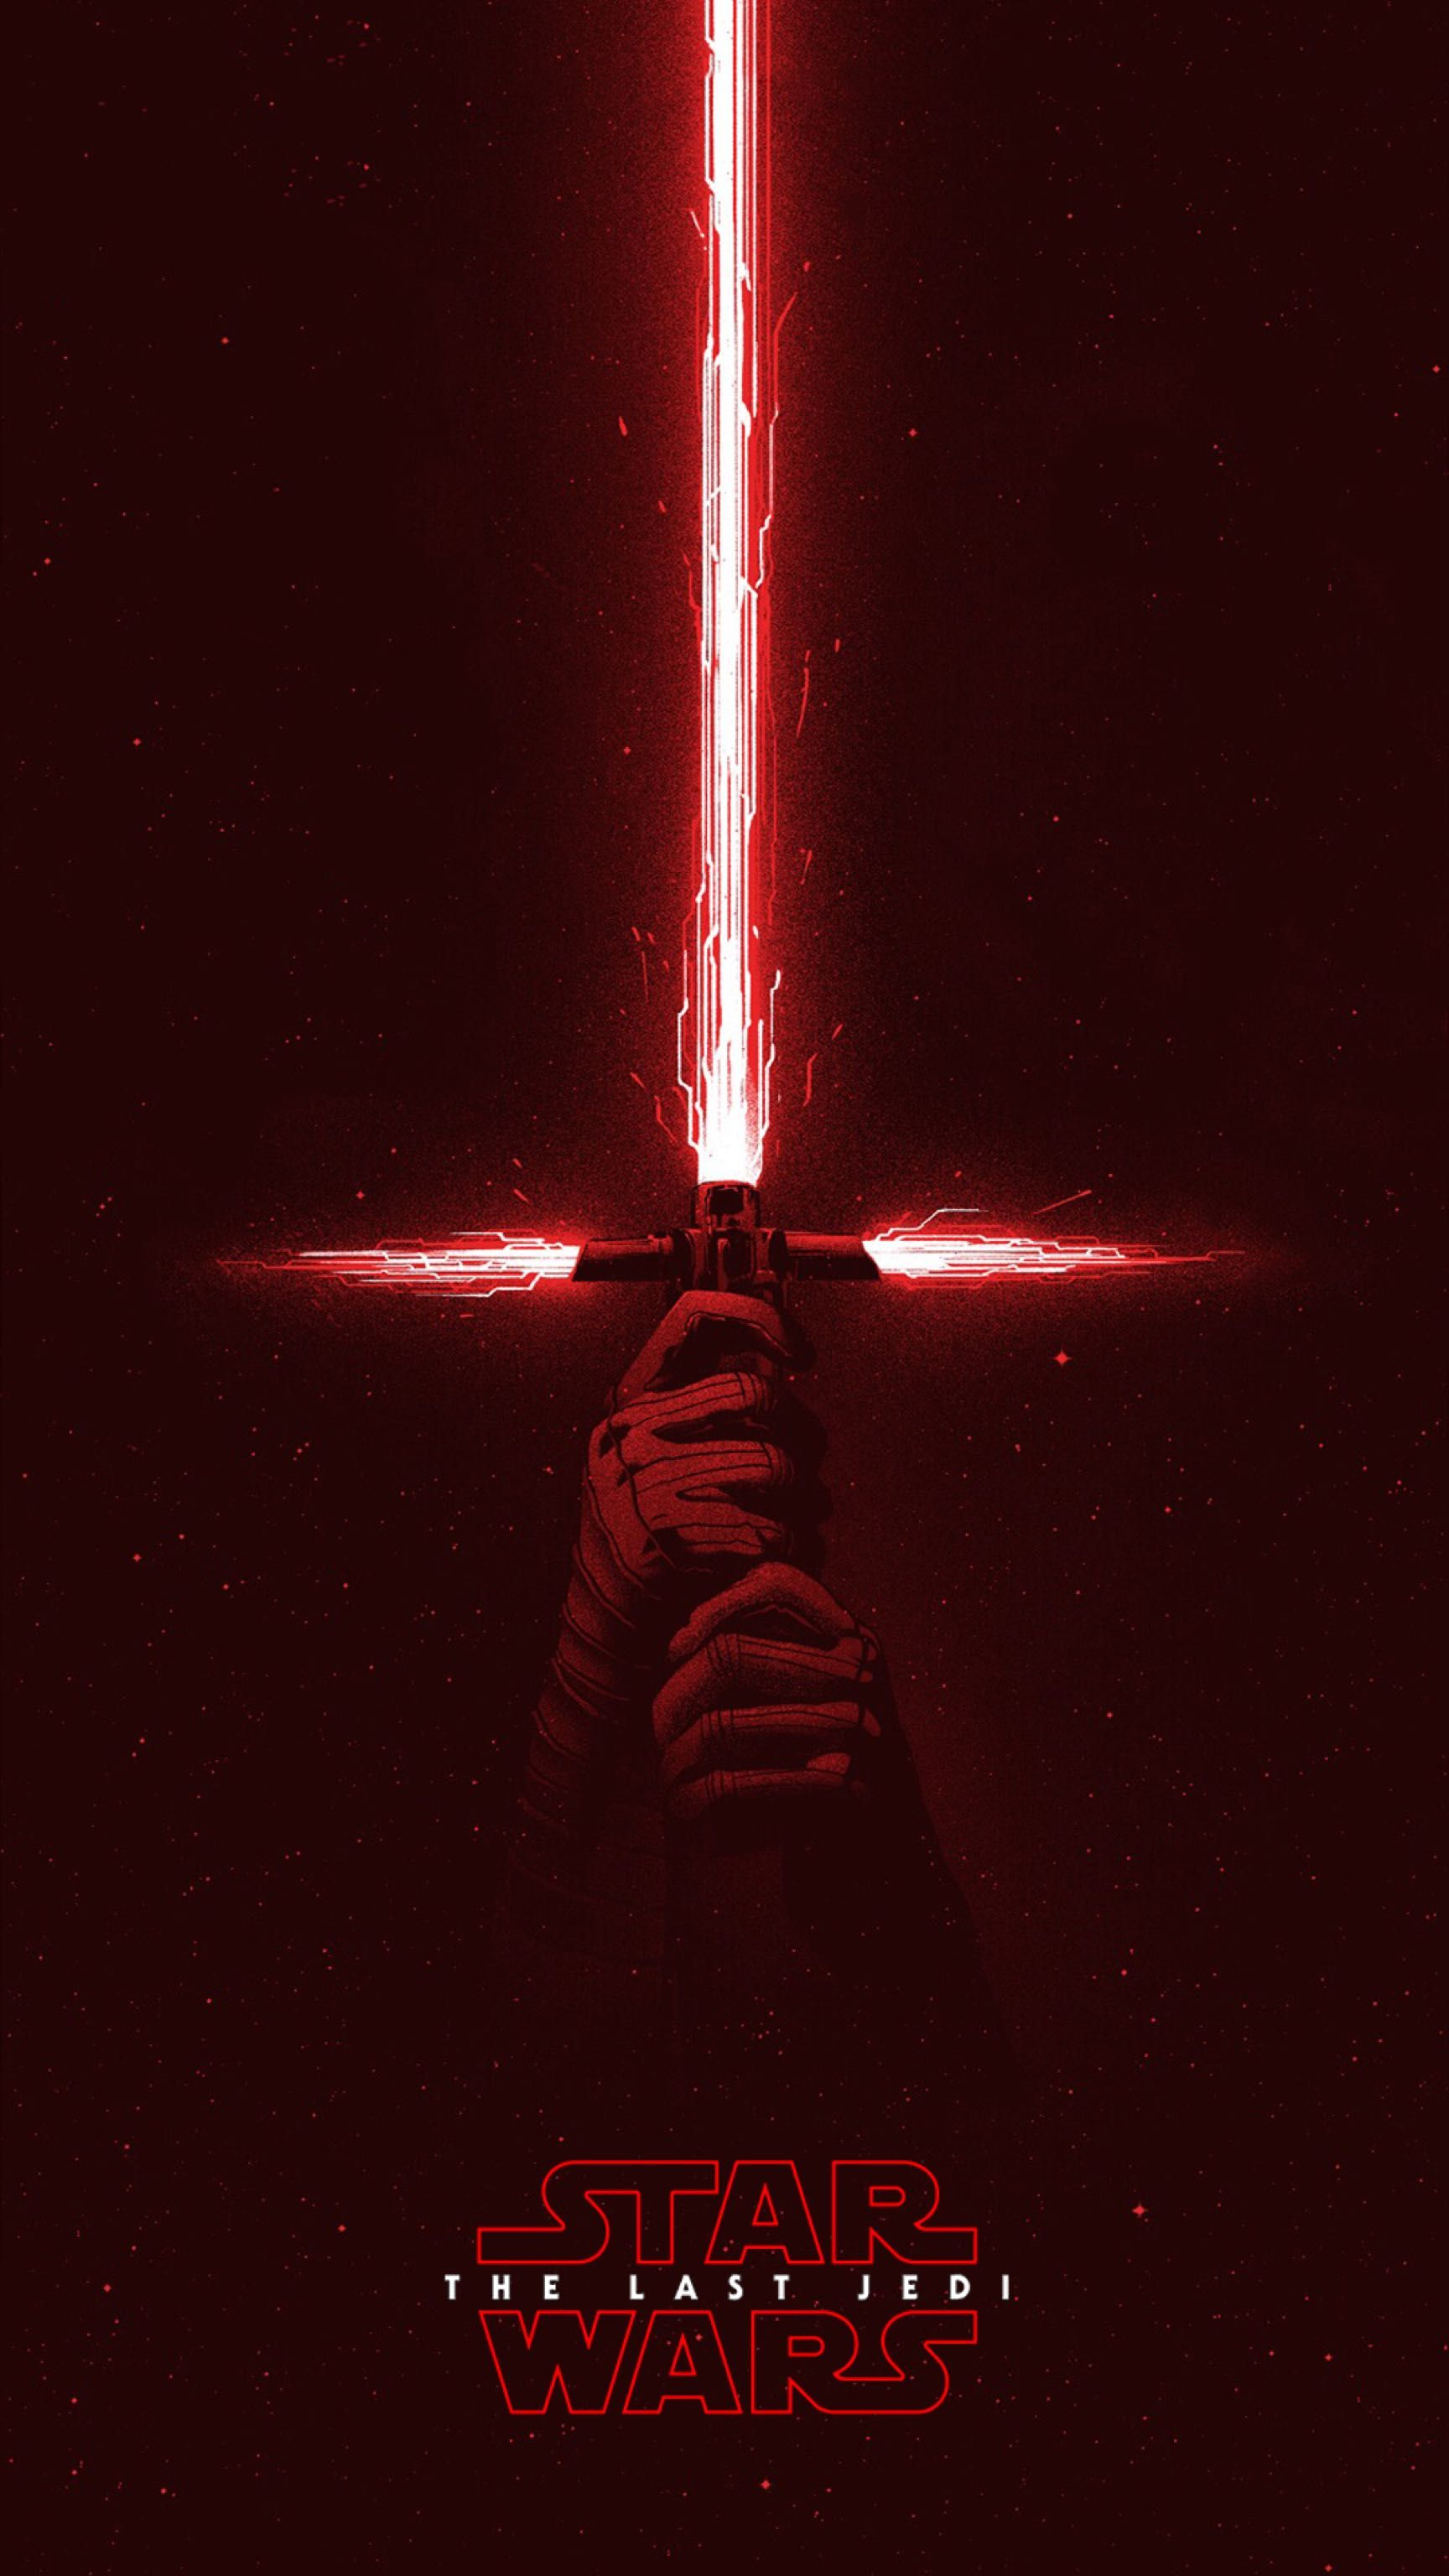 The Last Jedi Kylo Ren Heaven Help Us If Hes The Last Jedi Star Wars Wallpaper Kylo Ren Wallpaper Star Wars Characters